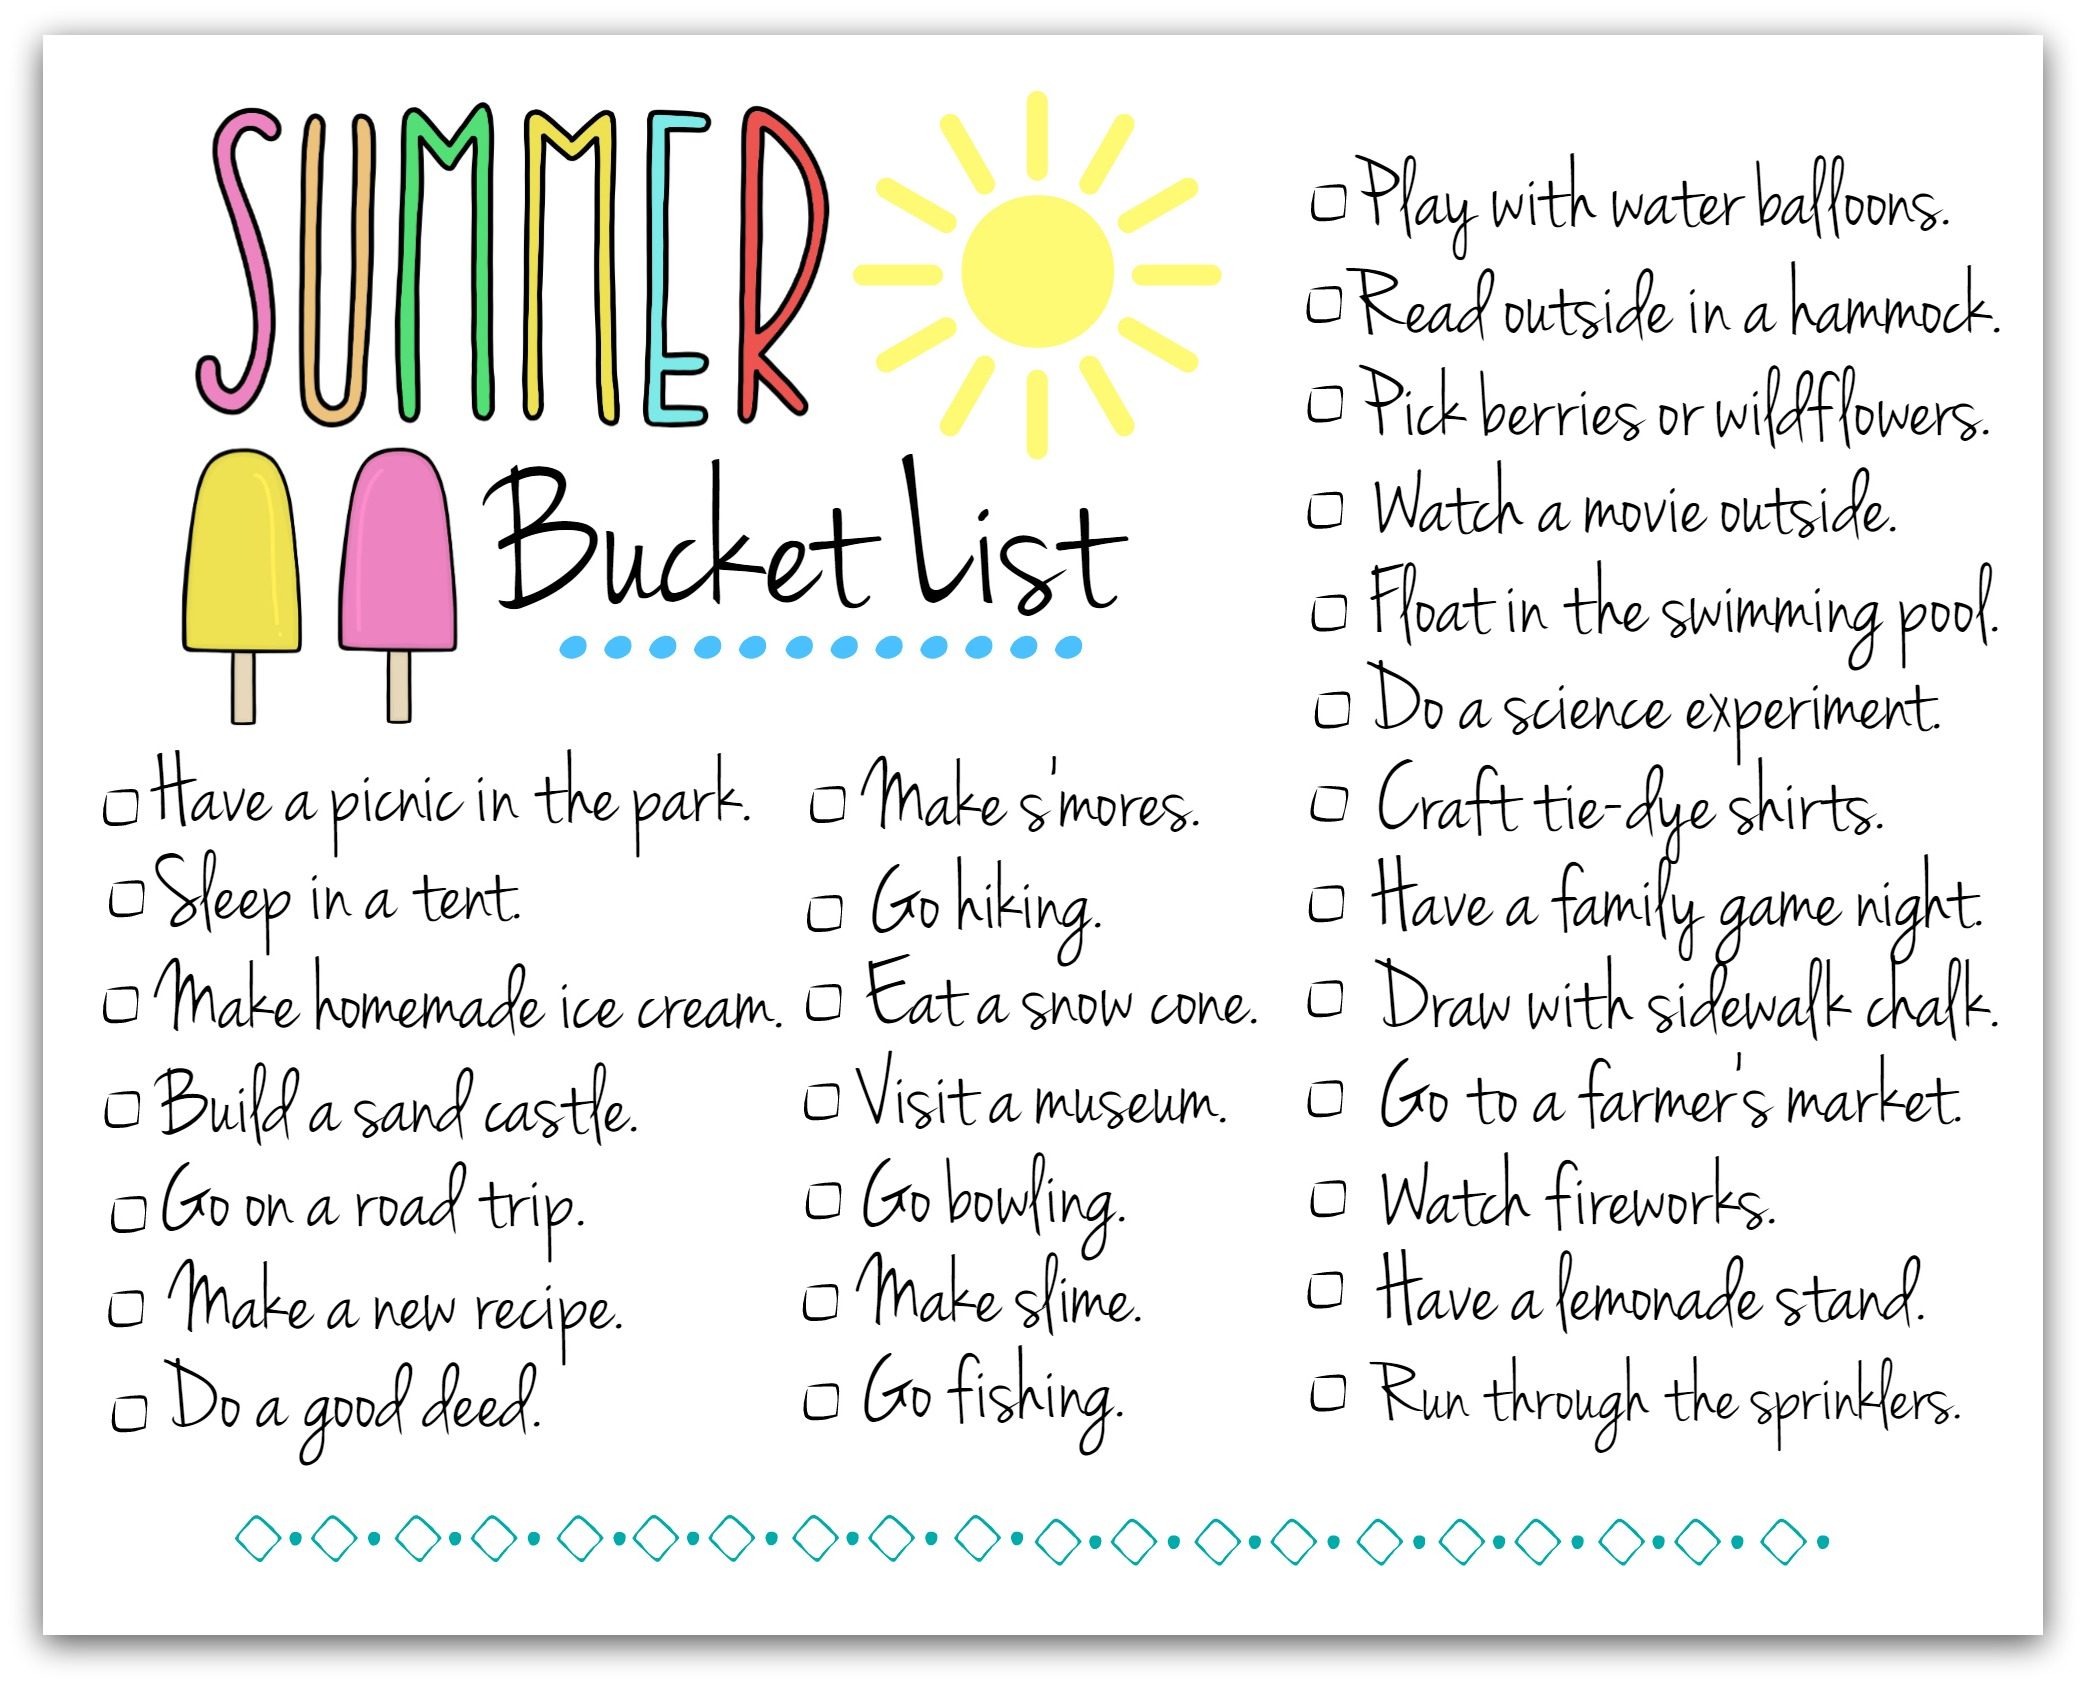 free printable summer bucket list – filled out with our ideas